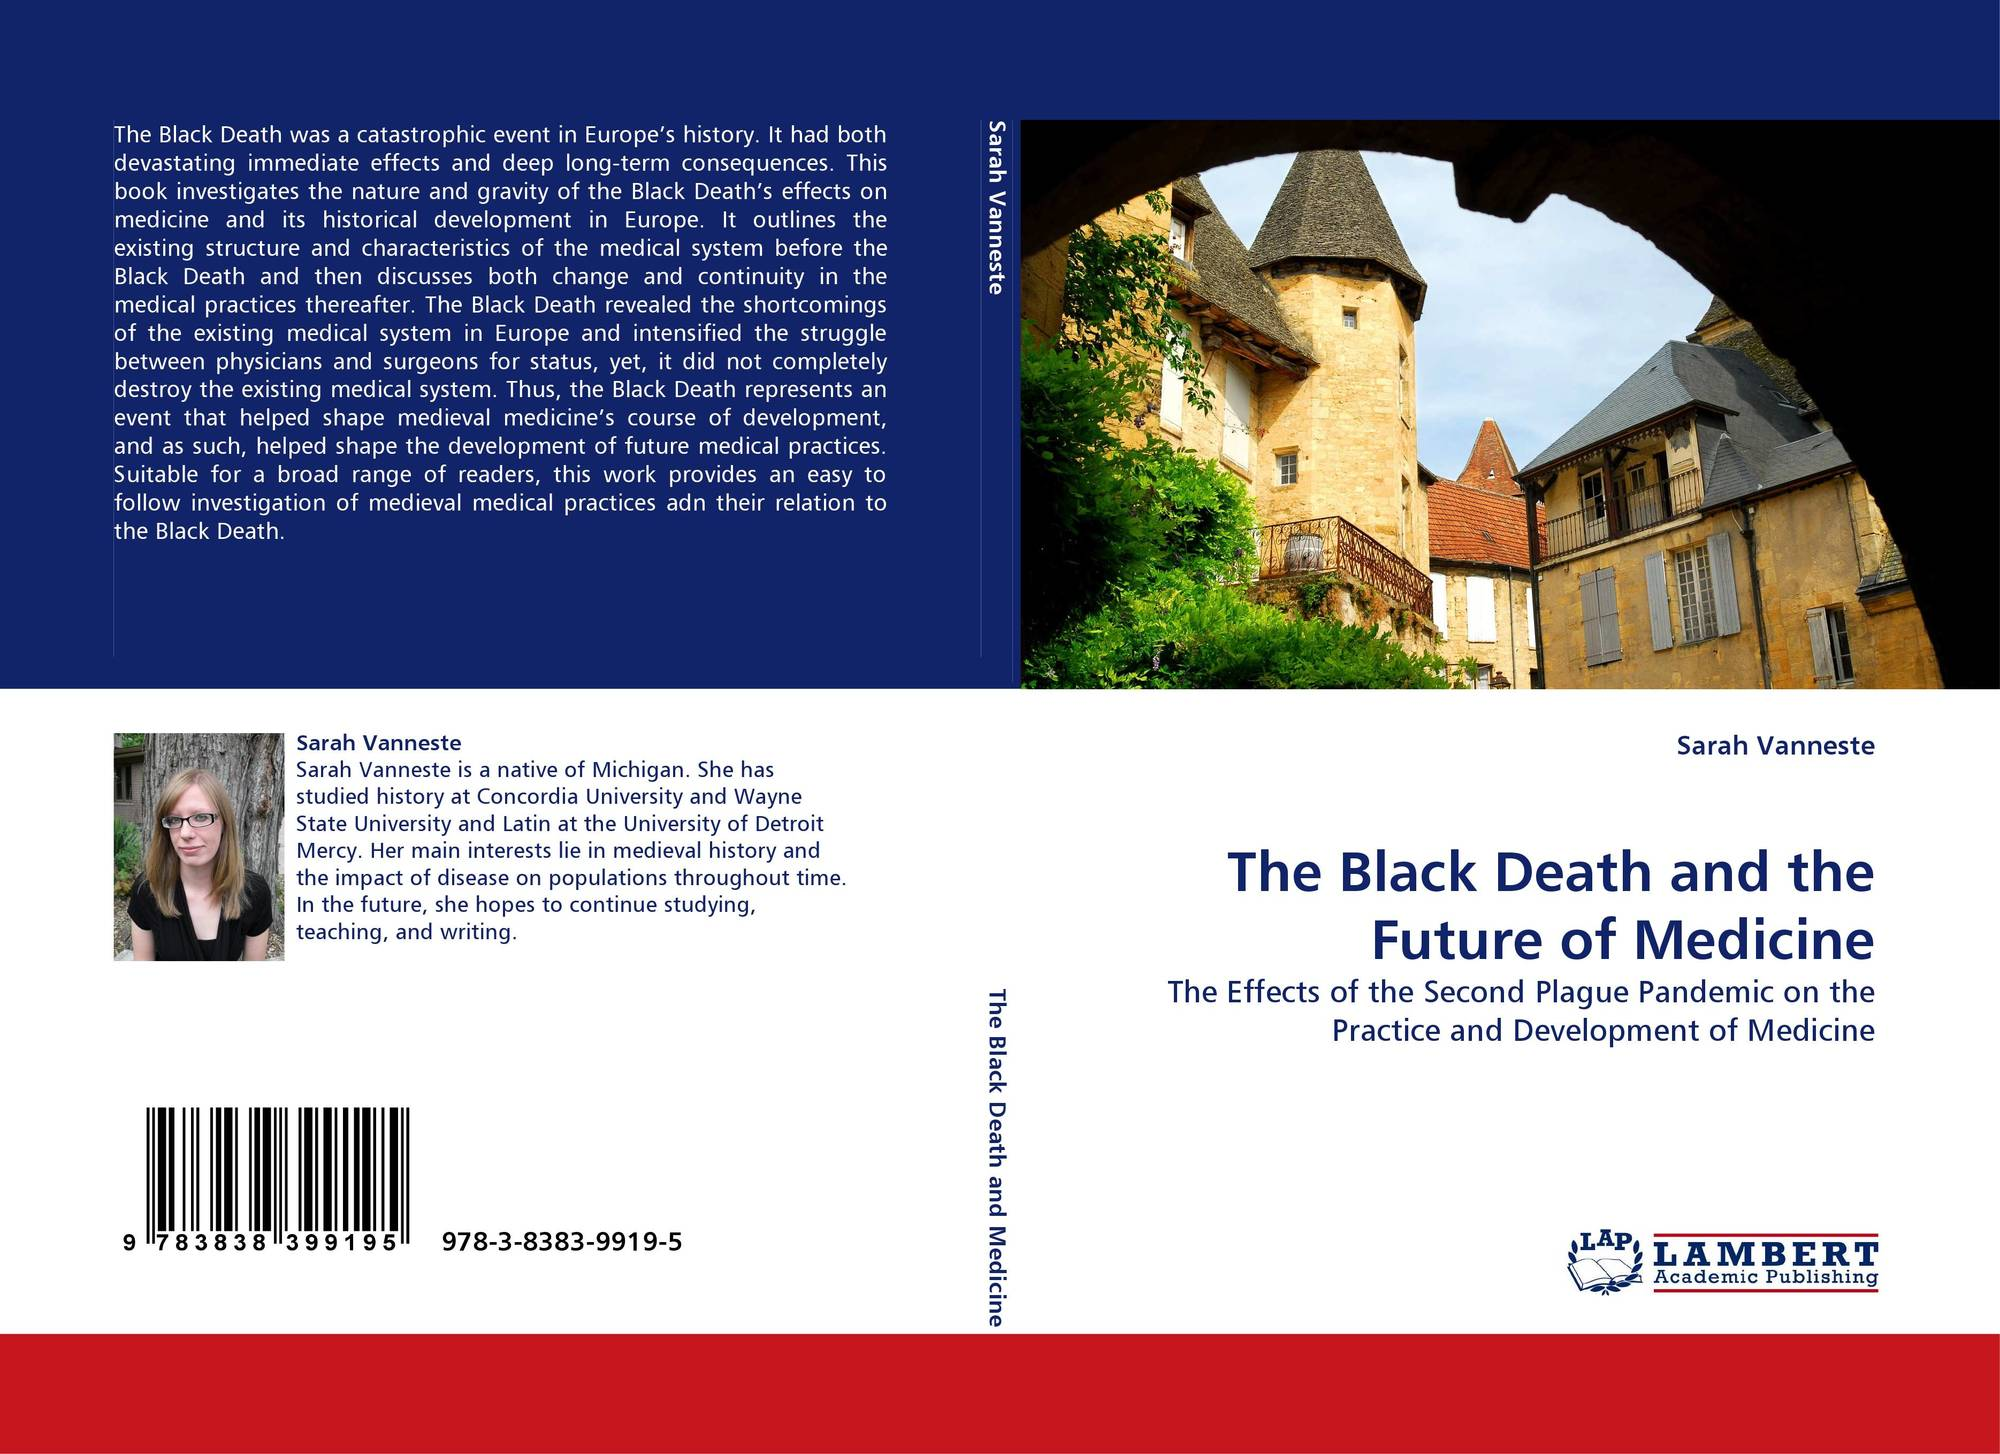 the black death had many long term consequences history essay The long term effect was an economic boom that led to the renaissance europe was overcrowded before the plague, and there were serious droughts and famine after the plague, there were more resources per person, leading to economic growth and prosperity.